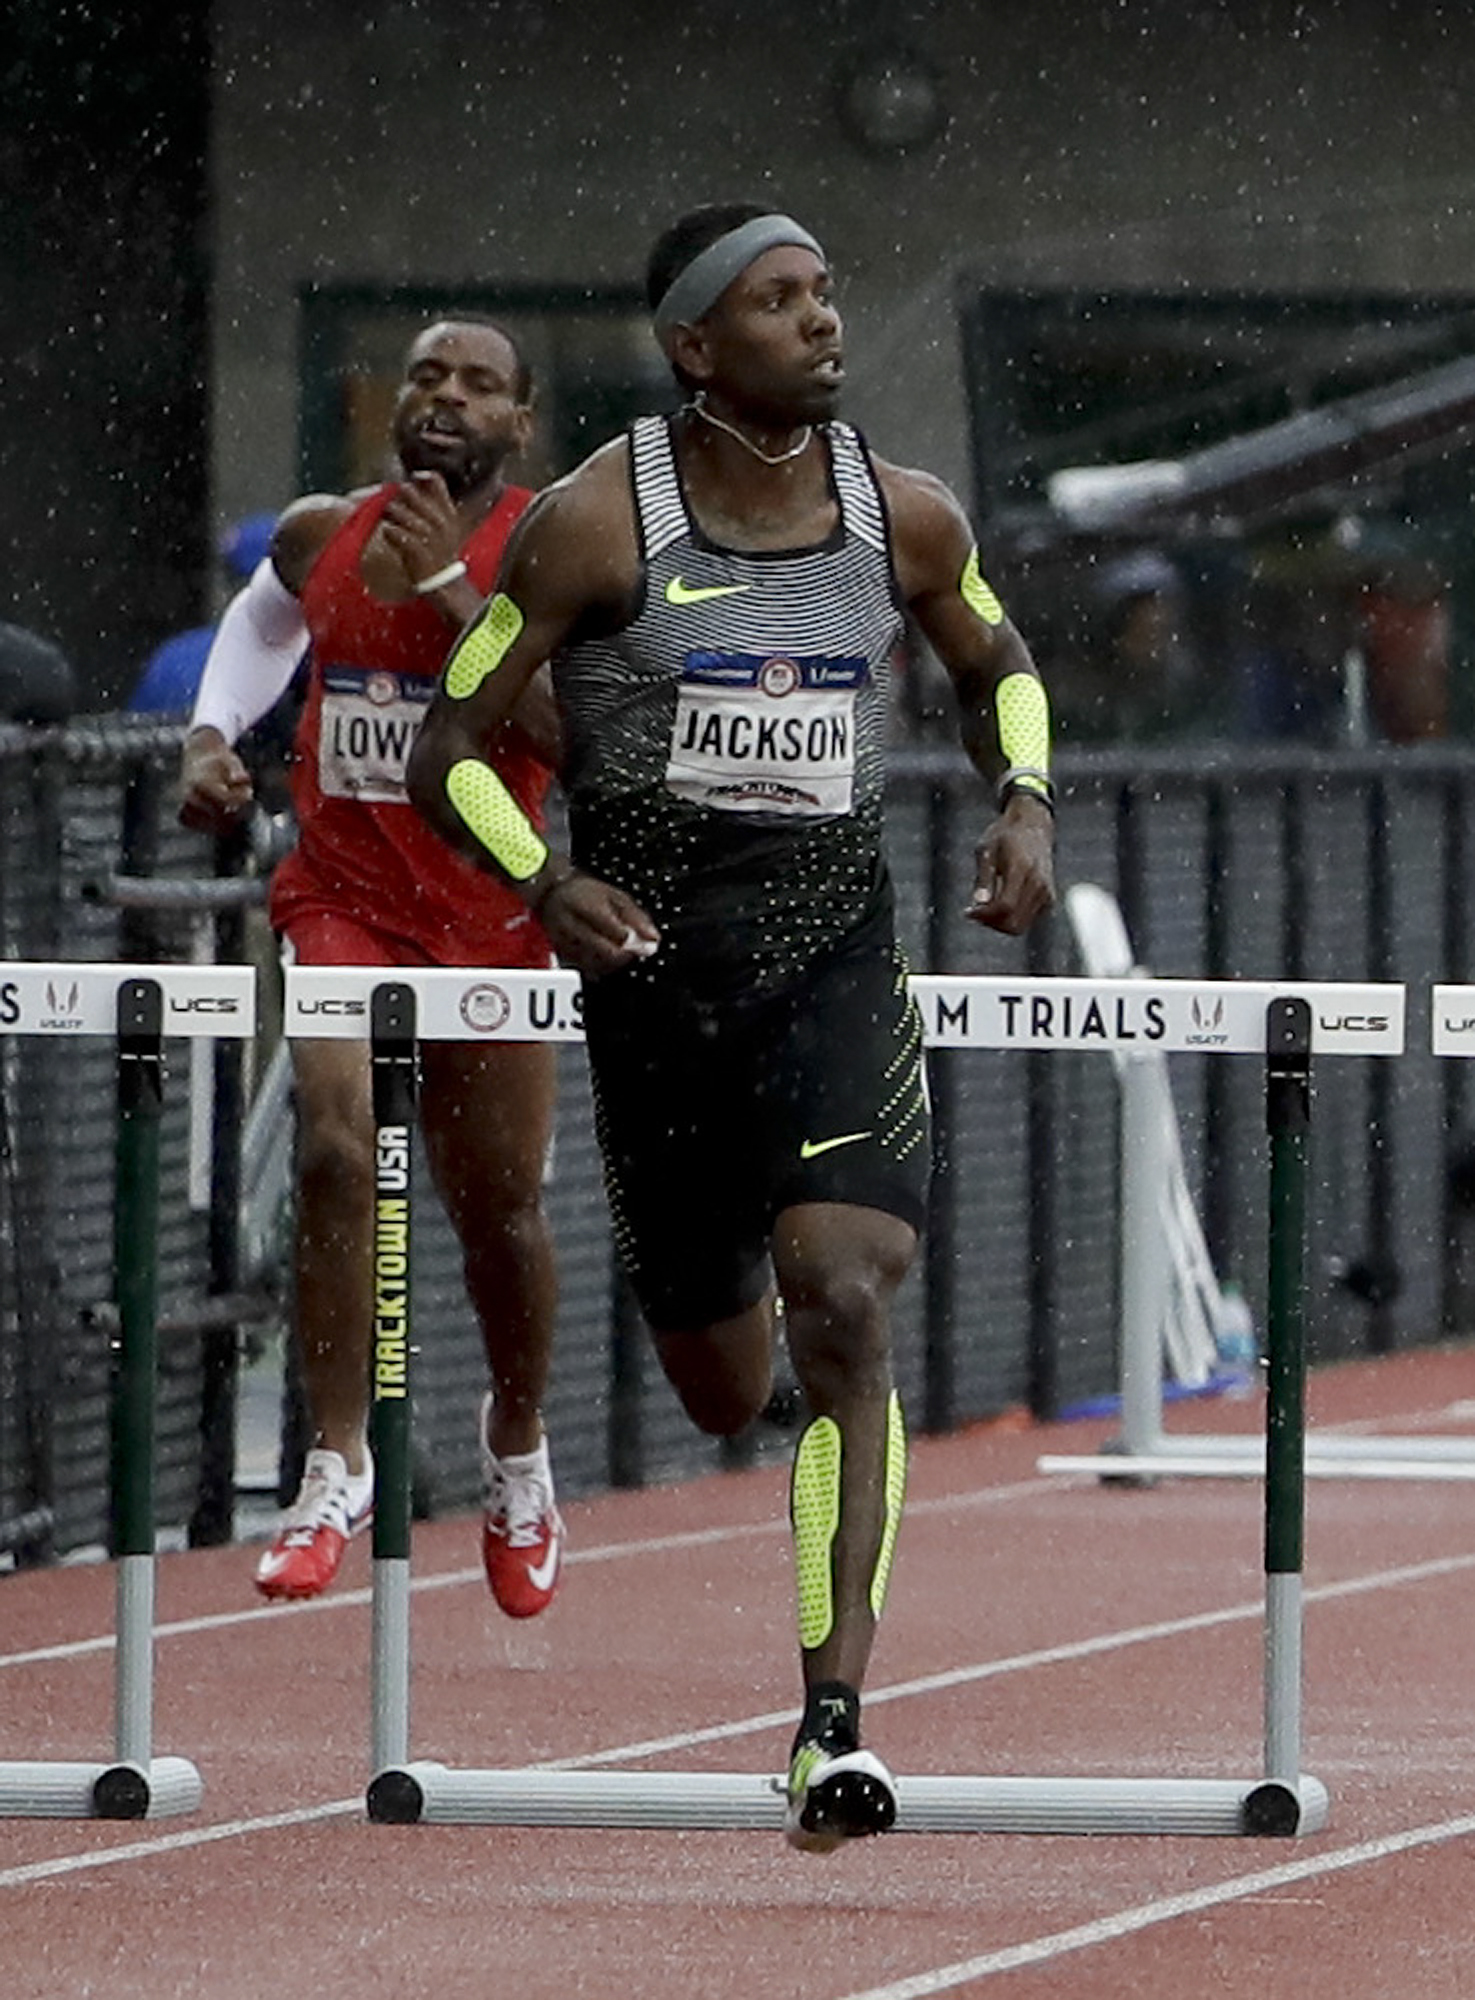 Bershawn Jackson runs during his heat in the mens 400-meter hurdles at the U.S. Olympic Track and Field Trials, Thursday, July 7, 2016, in Eugene Ore. (AP Photo/Marcio Jose Sanchez)